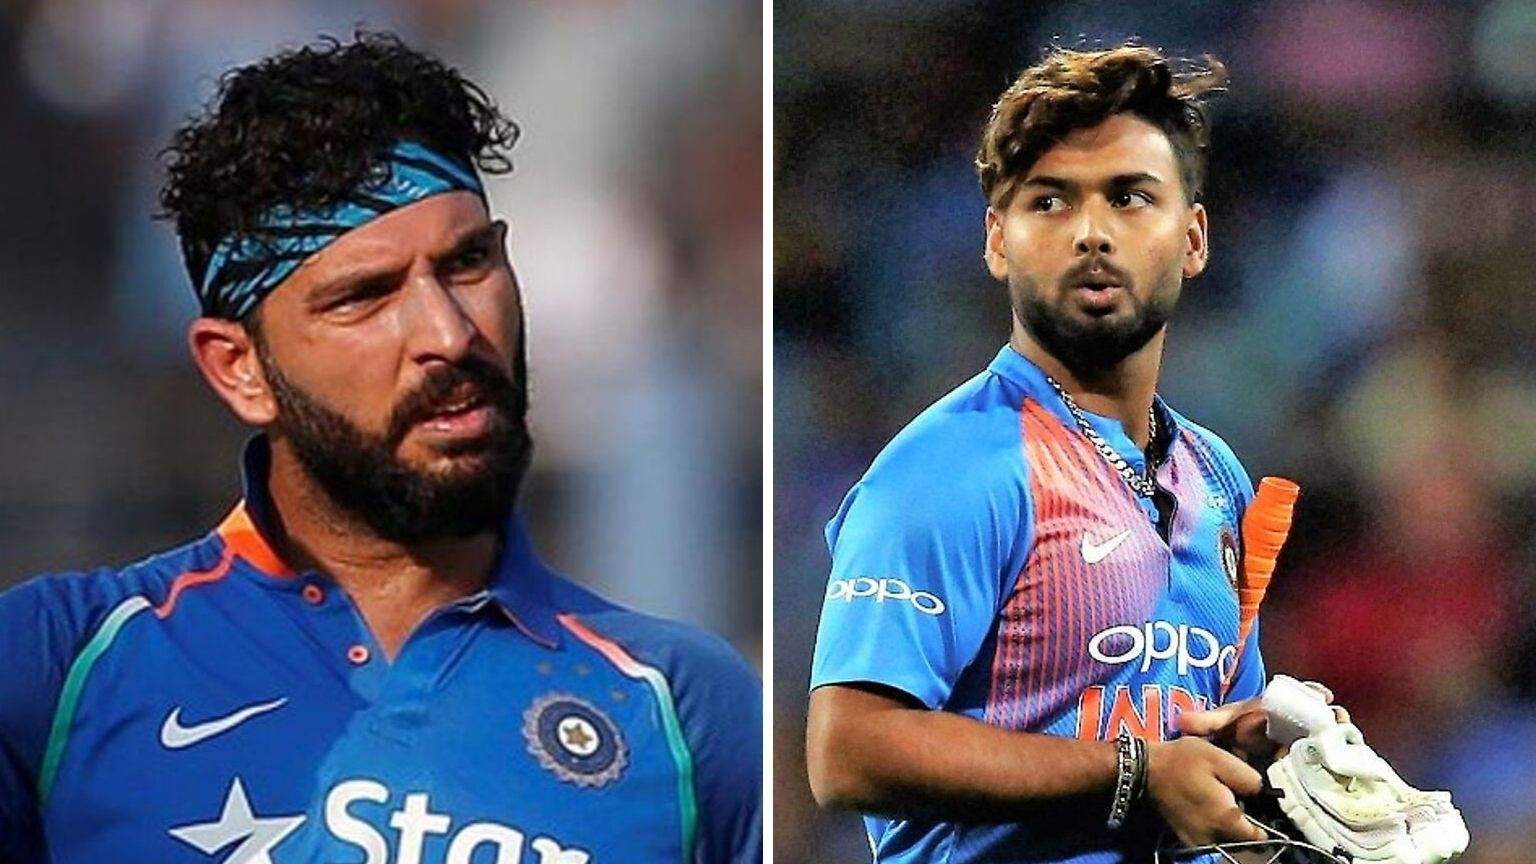 It's Wrong to Compare Rishabh Pant with MS Dhoni: Yuvraj